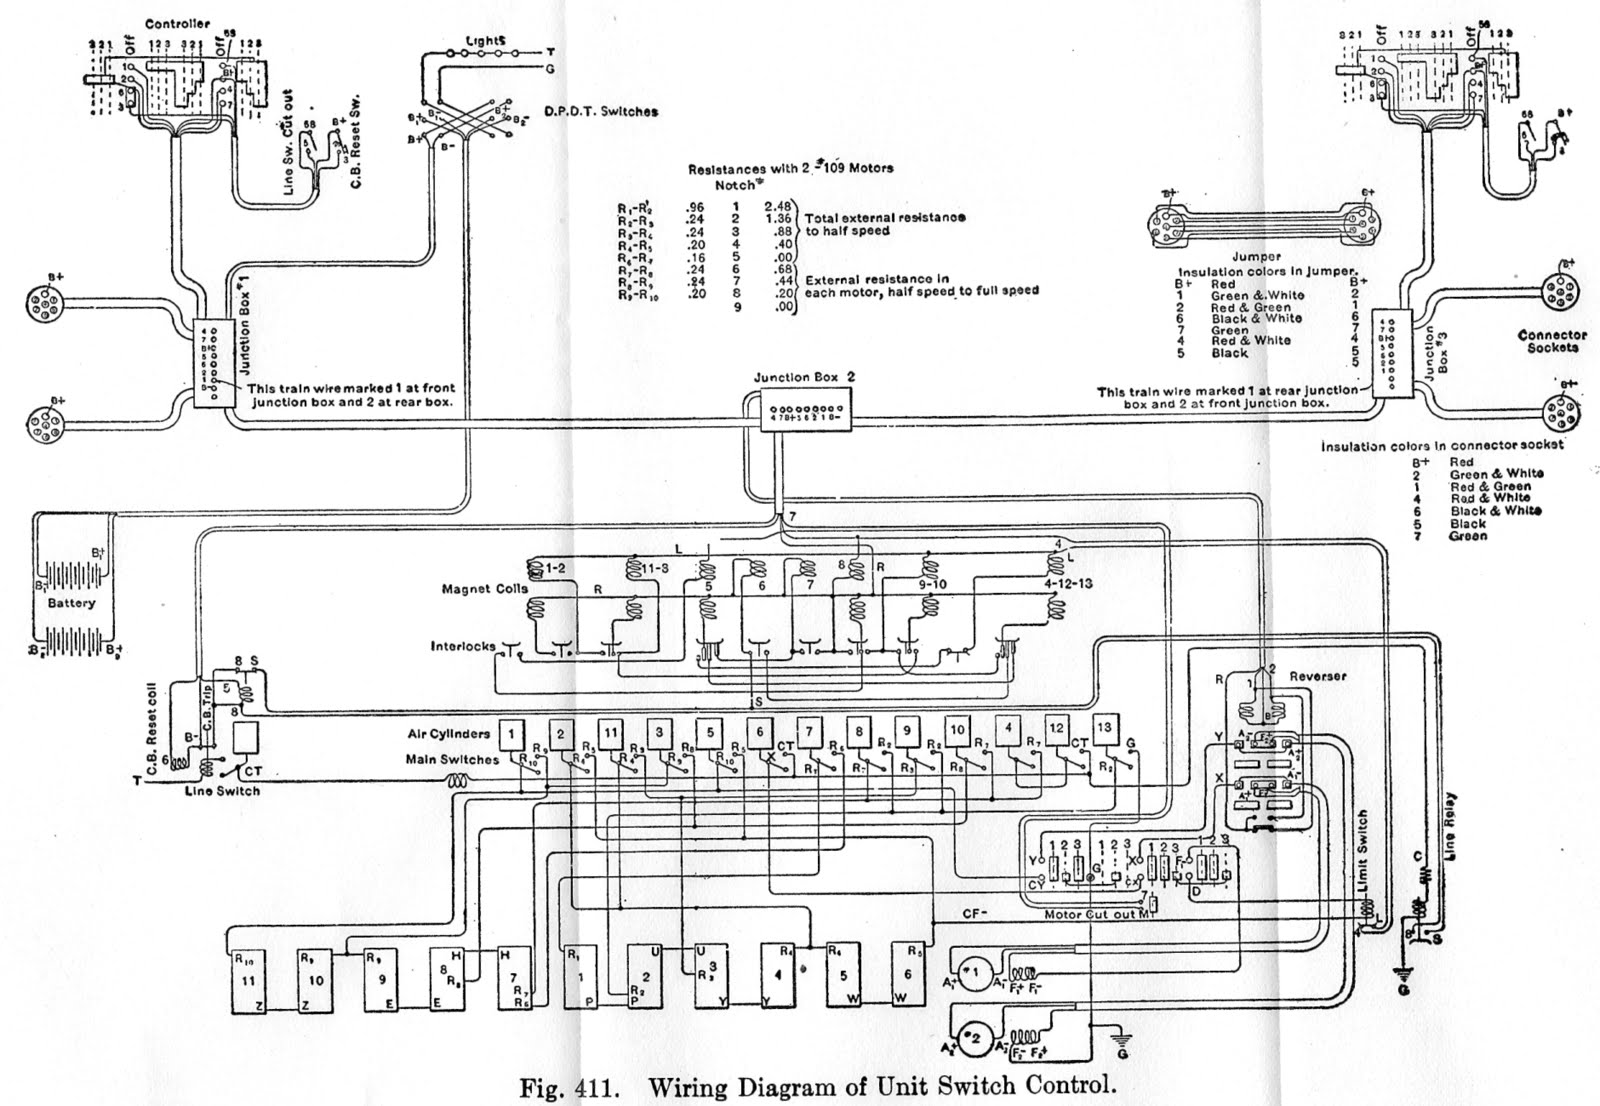 westinghouse motor control wiring diagram westinghouse hicks car works control circuit diagrams on westinghouse motor control wiring diagram